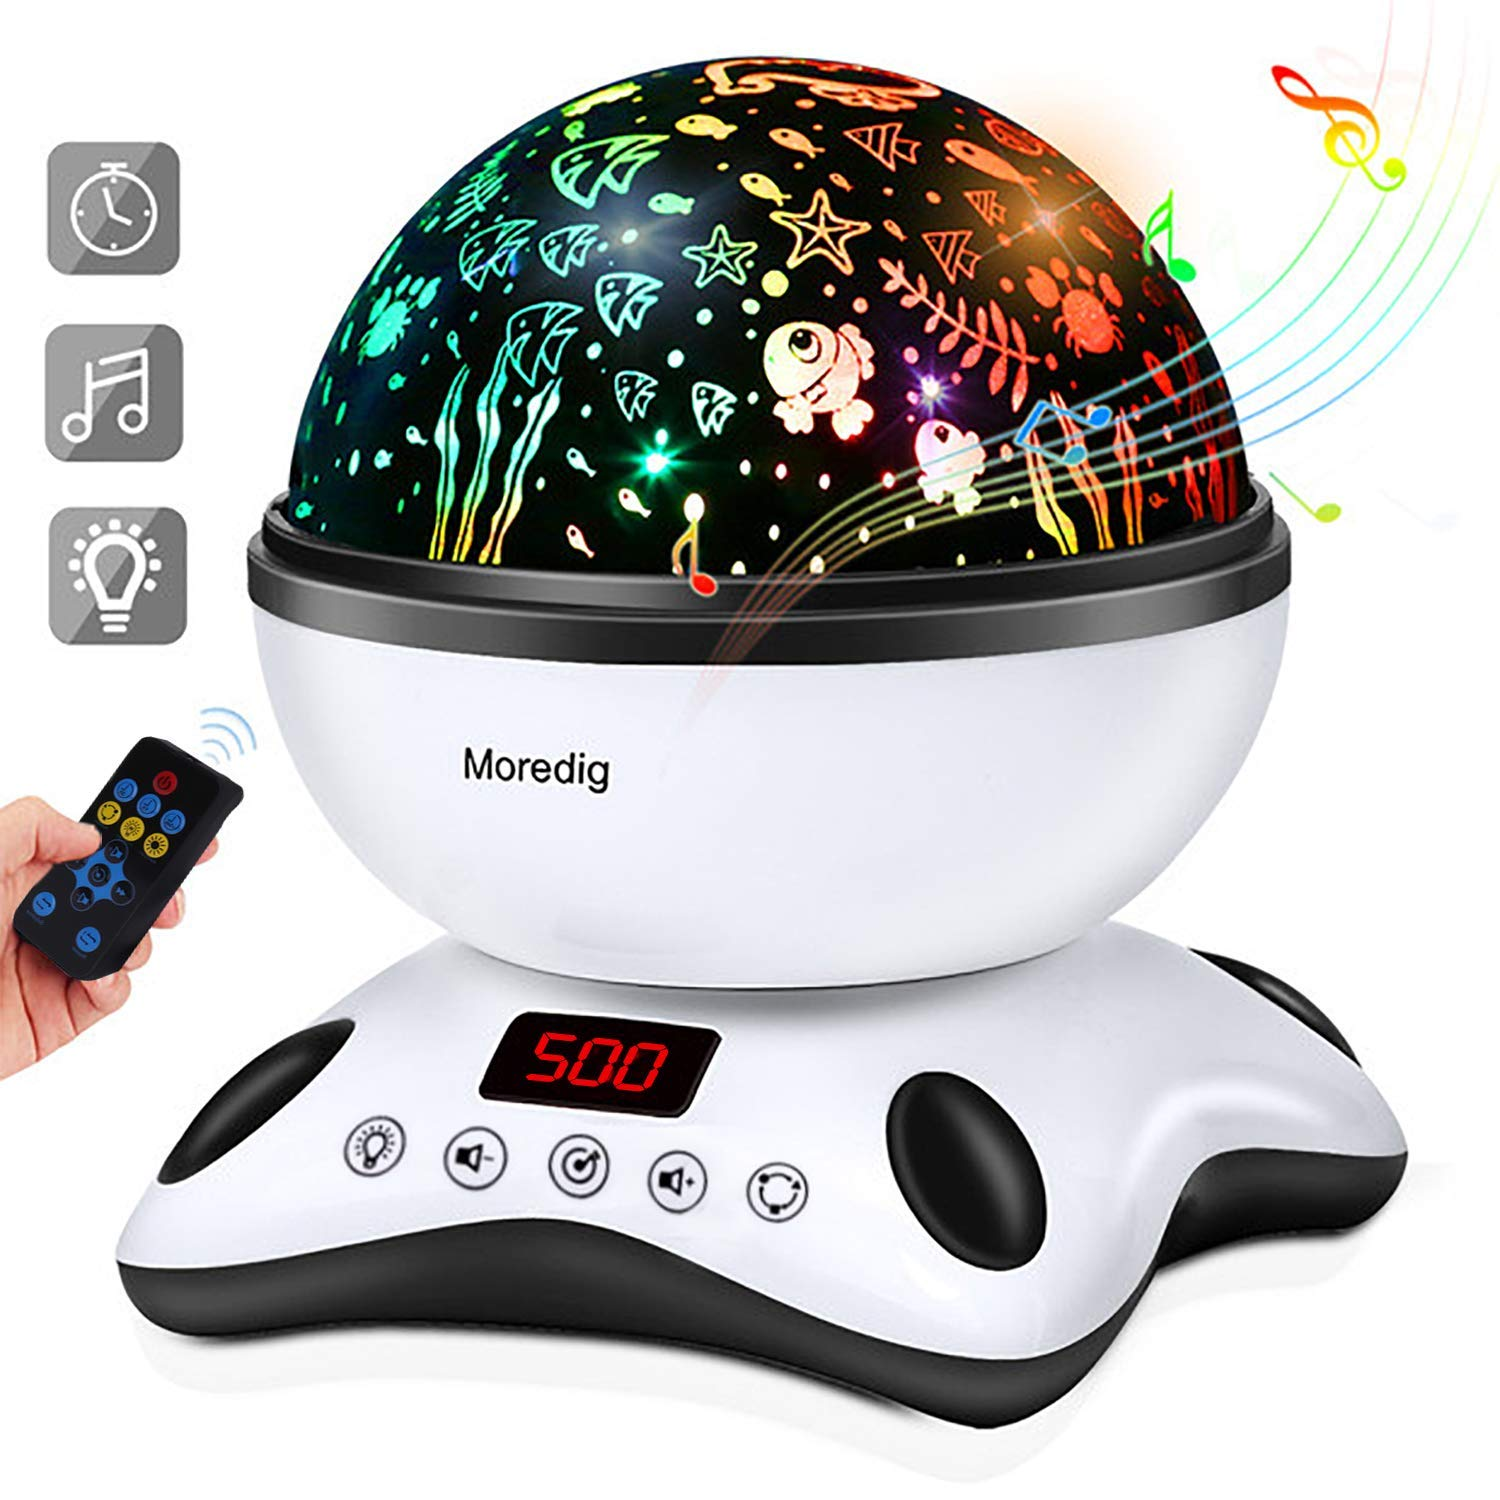 Moredig Baby Light Projector Remote Control and Timer Design Projection lamp